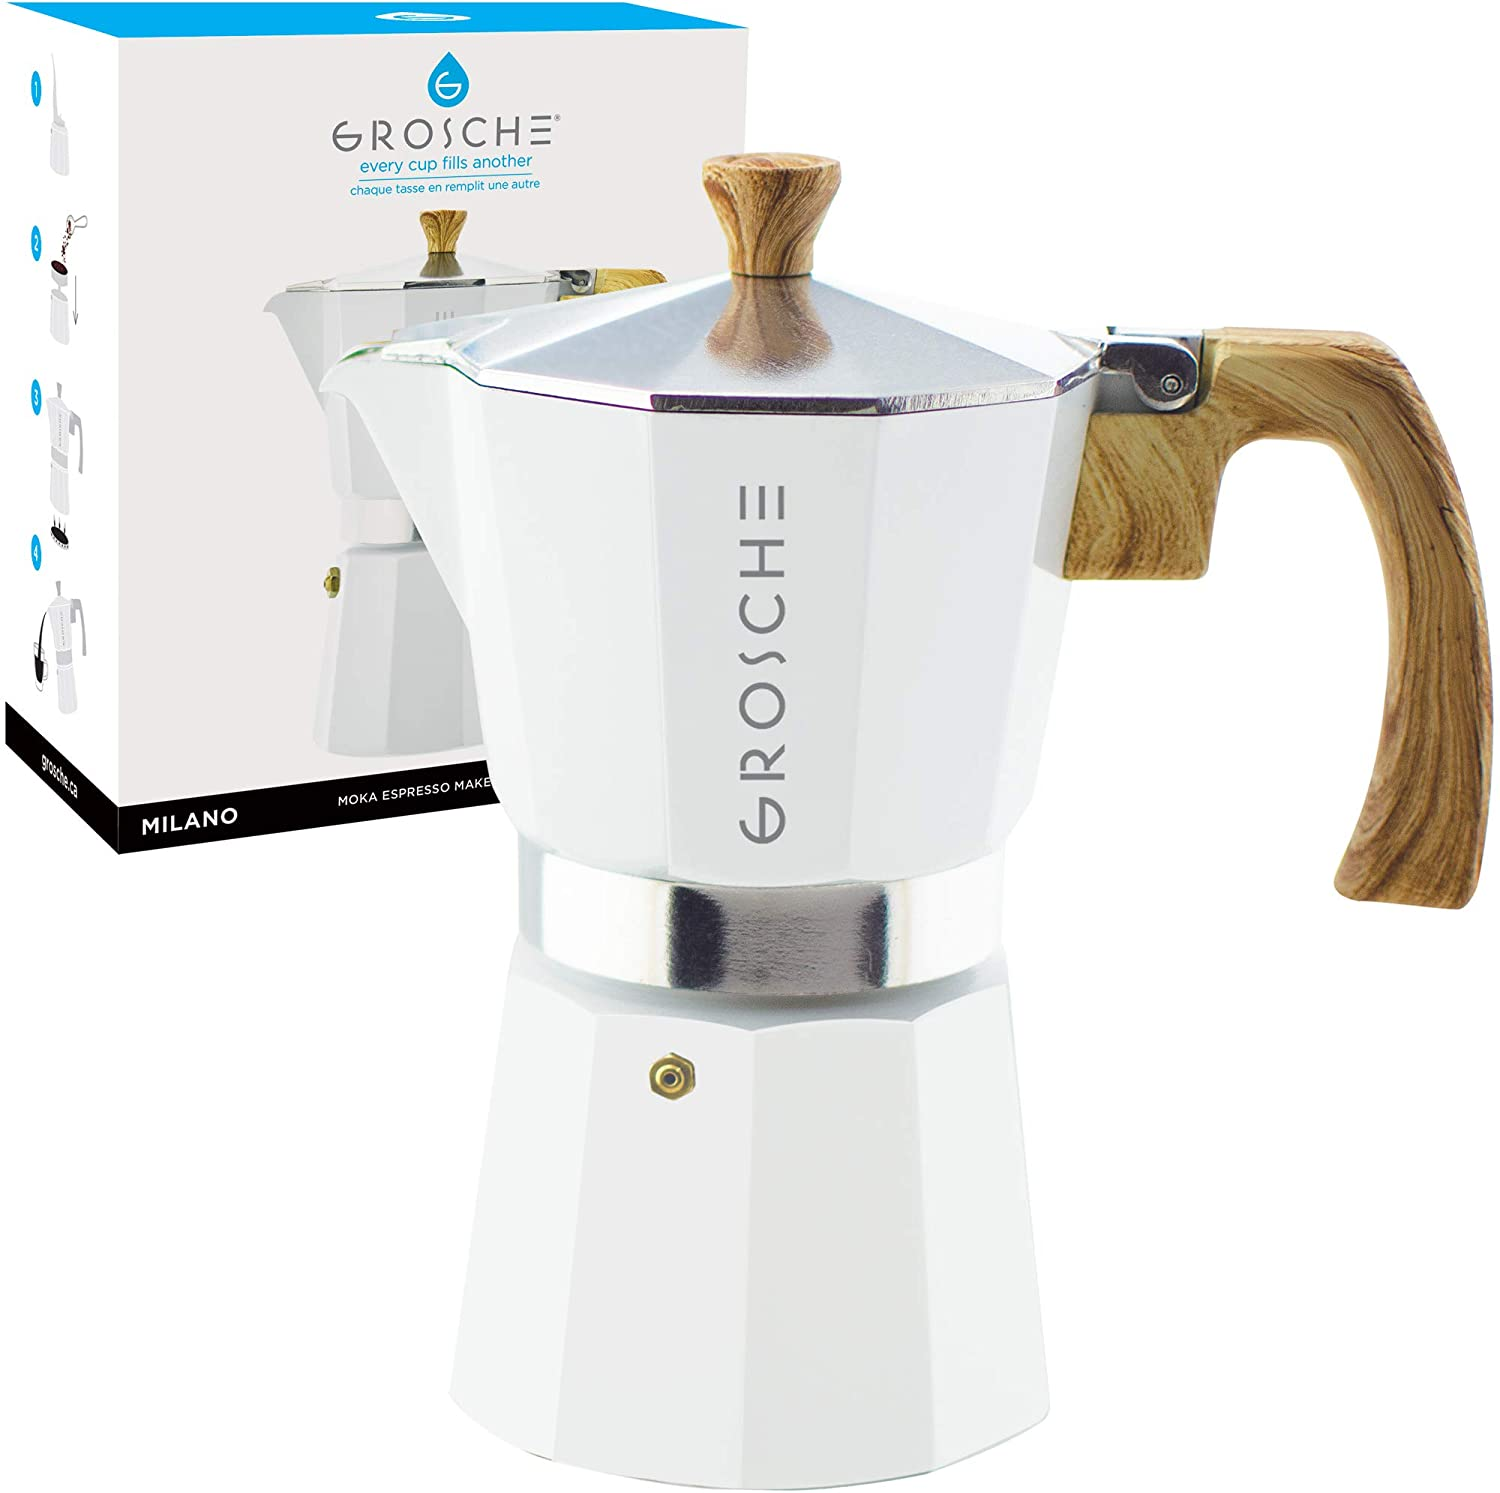 GROSCHE Milano Stovetop Espresso Maker Moka Pot 6 Cup - 9.3 oz, White - Cuban Coffee Maker Stove top coffee maker Moka Italian espresso greca coffee ...